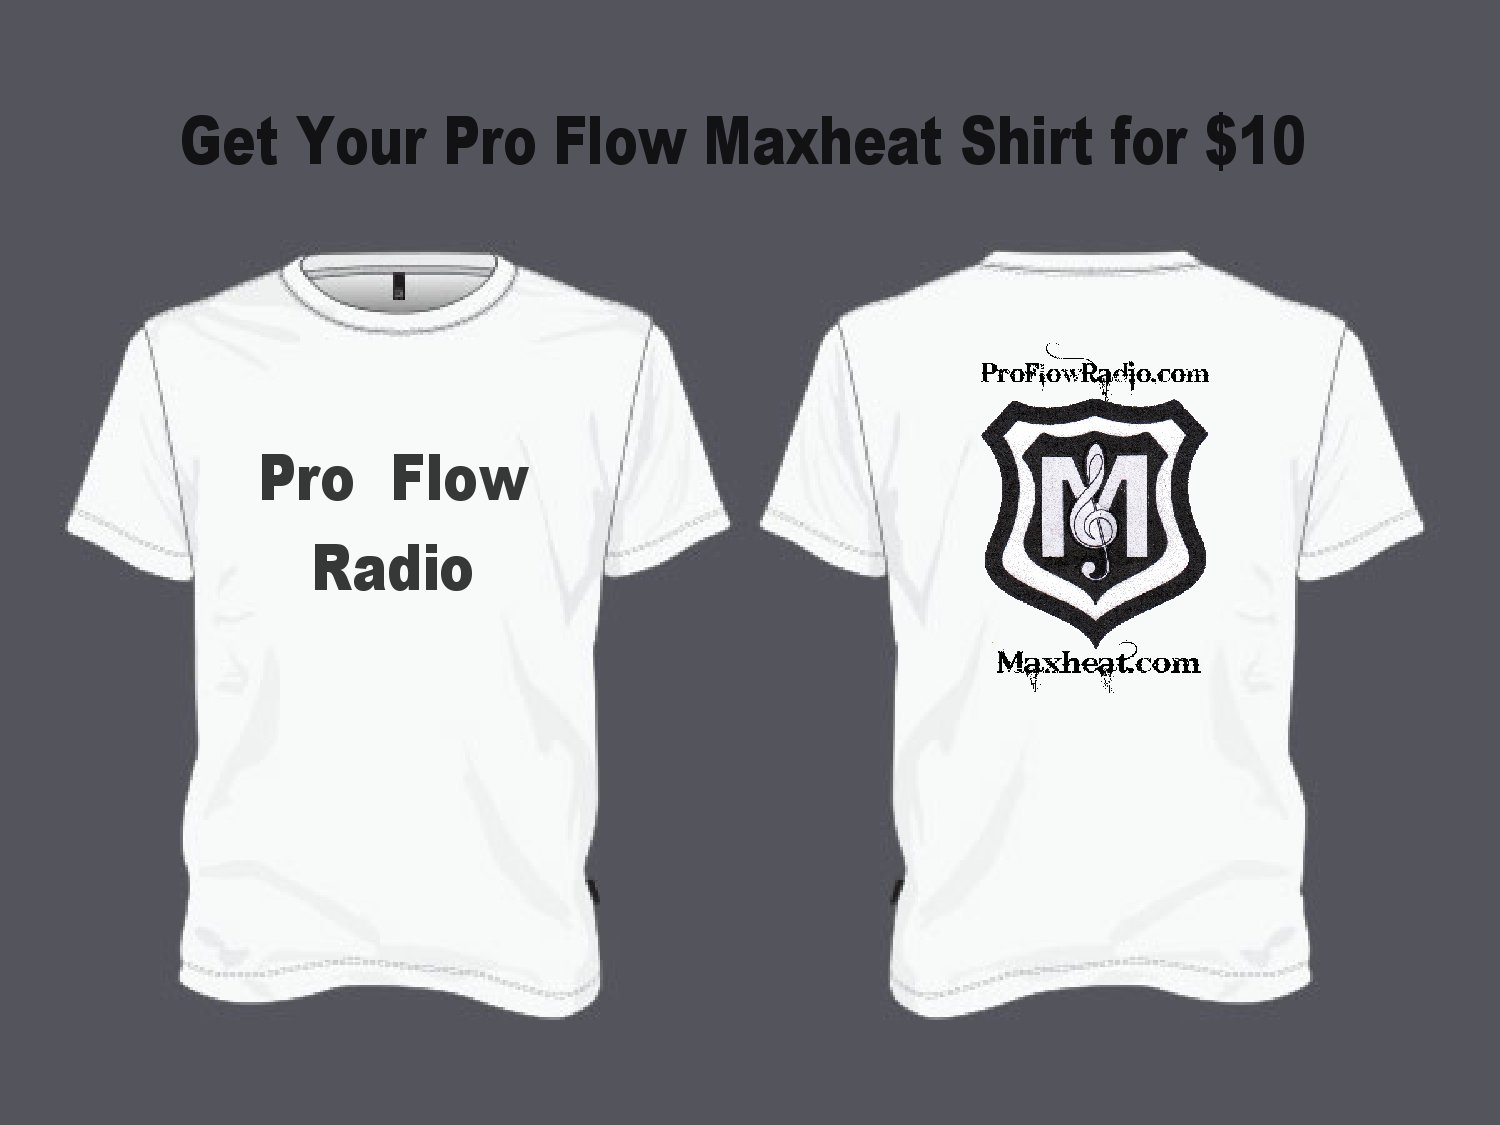 Get Your Maxheat Shirt Today!